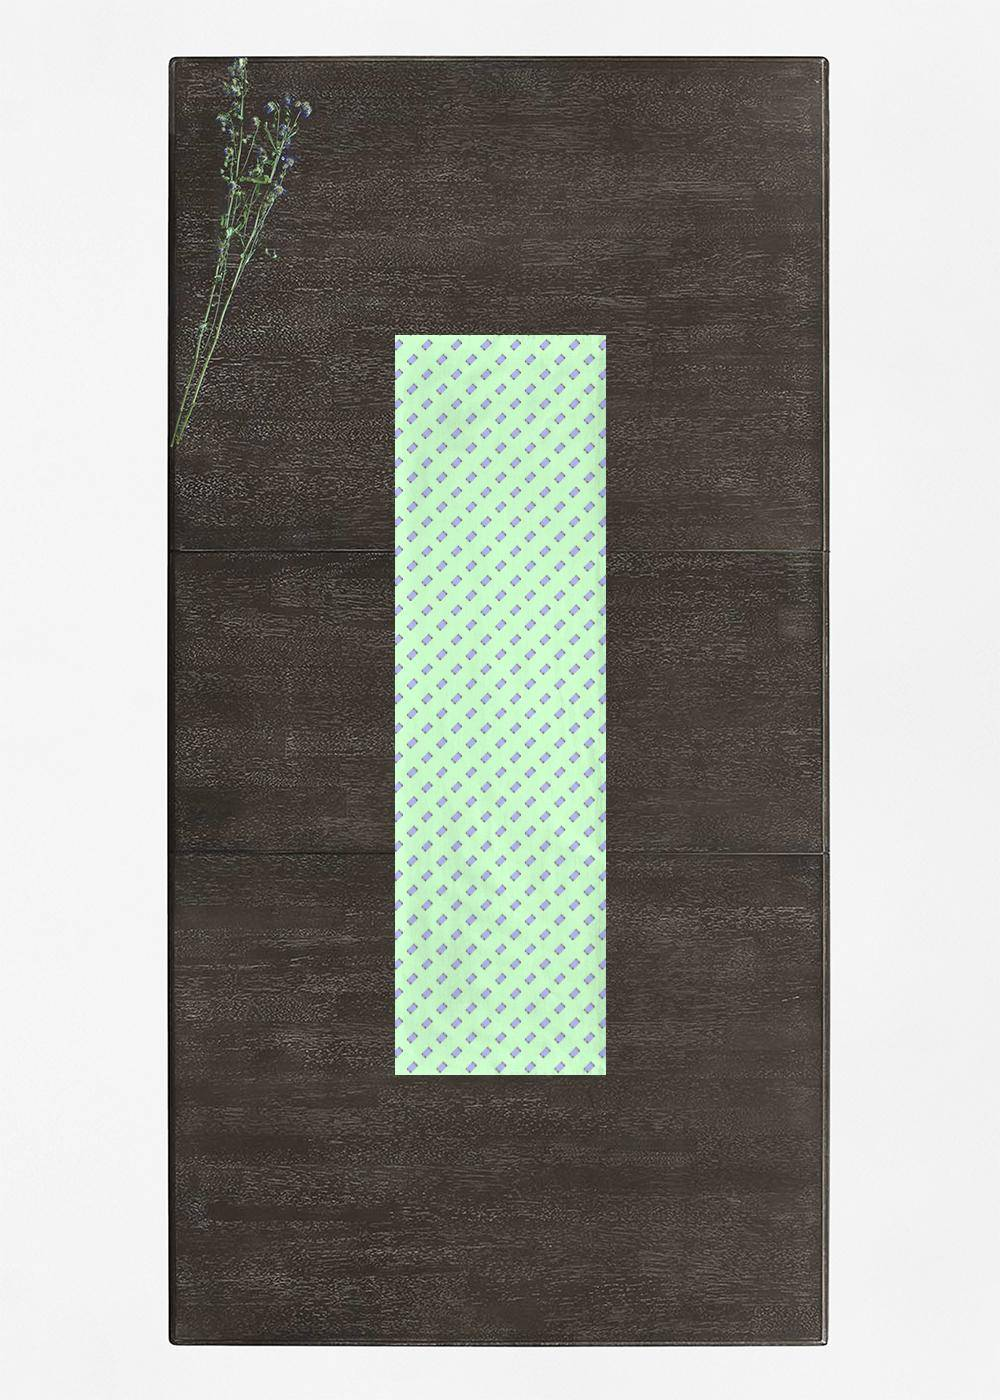 VIDA Table Runner - Mobile Phones On Green in Green by VIDA Original Artist  - Size: Long